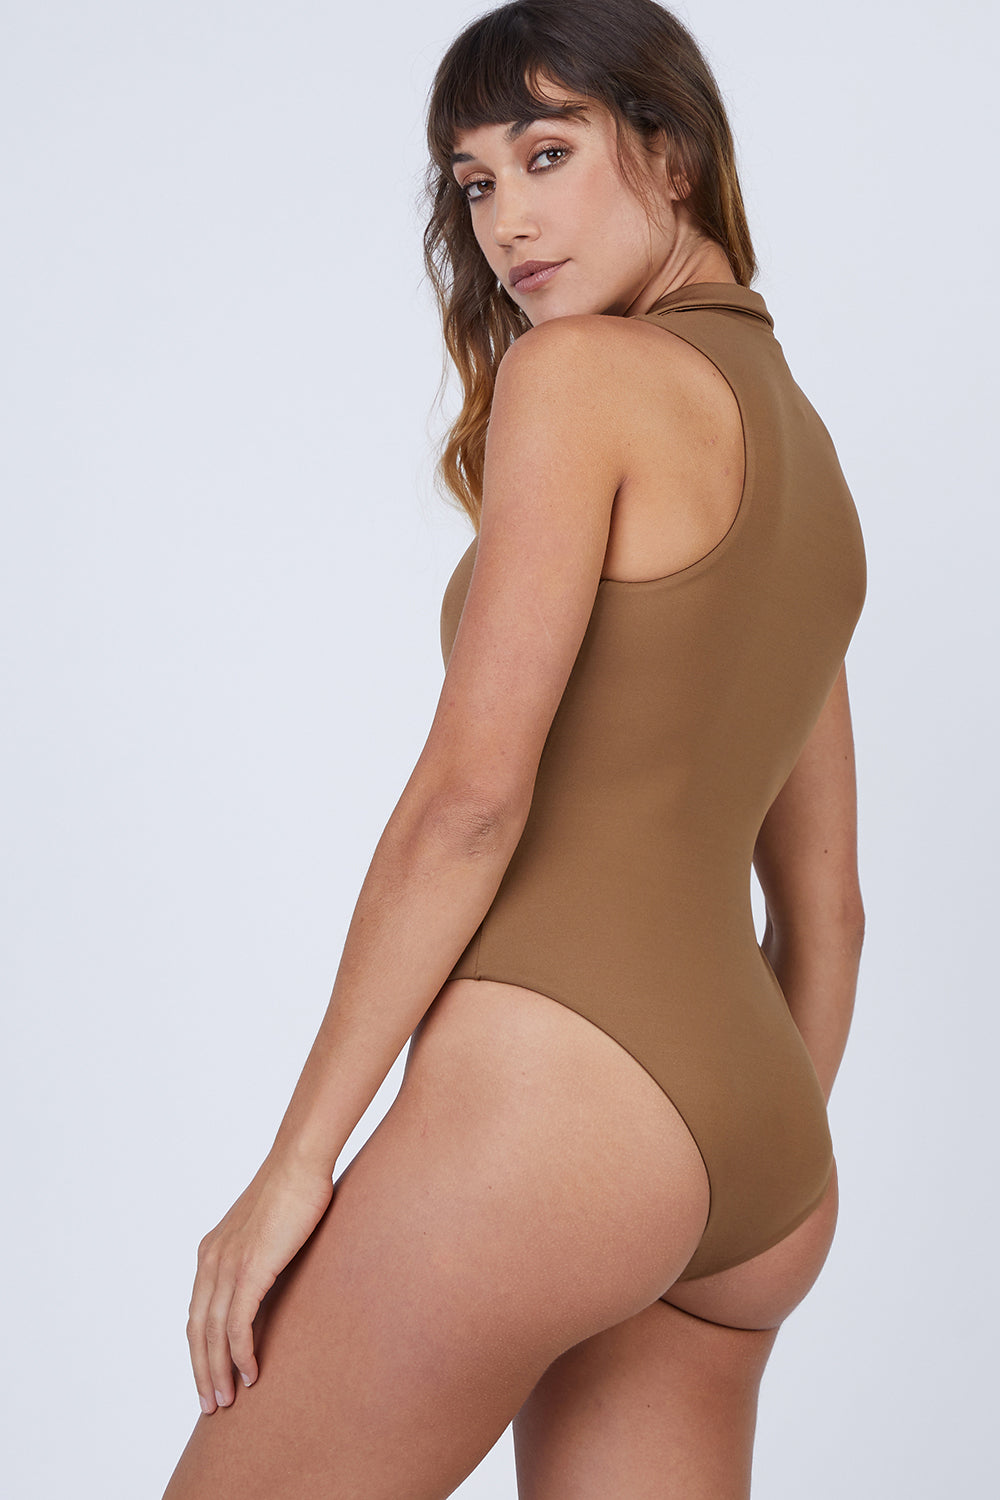 6e3982dc1f5 ... AMAIO SWIM Collette Plunging One Piece Swimsuit - Umber Brown -  undefined undefined